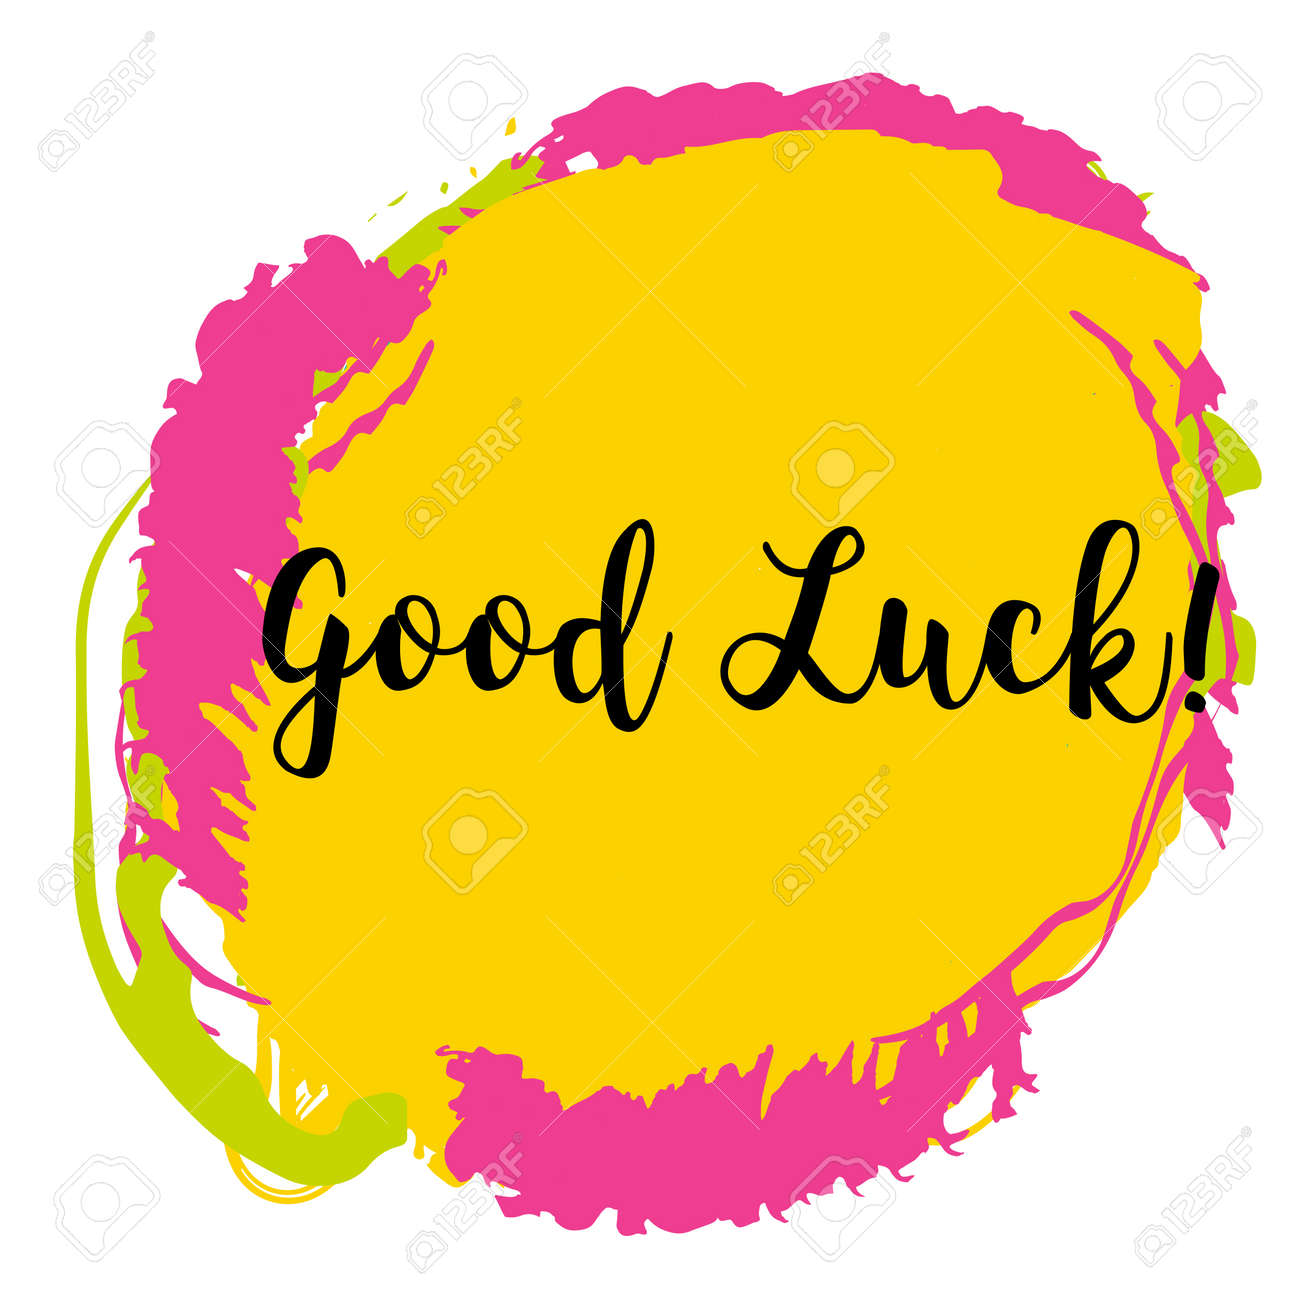 Good Luck Calligraphy. Concept Image Poster For Wall Art Prints ...